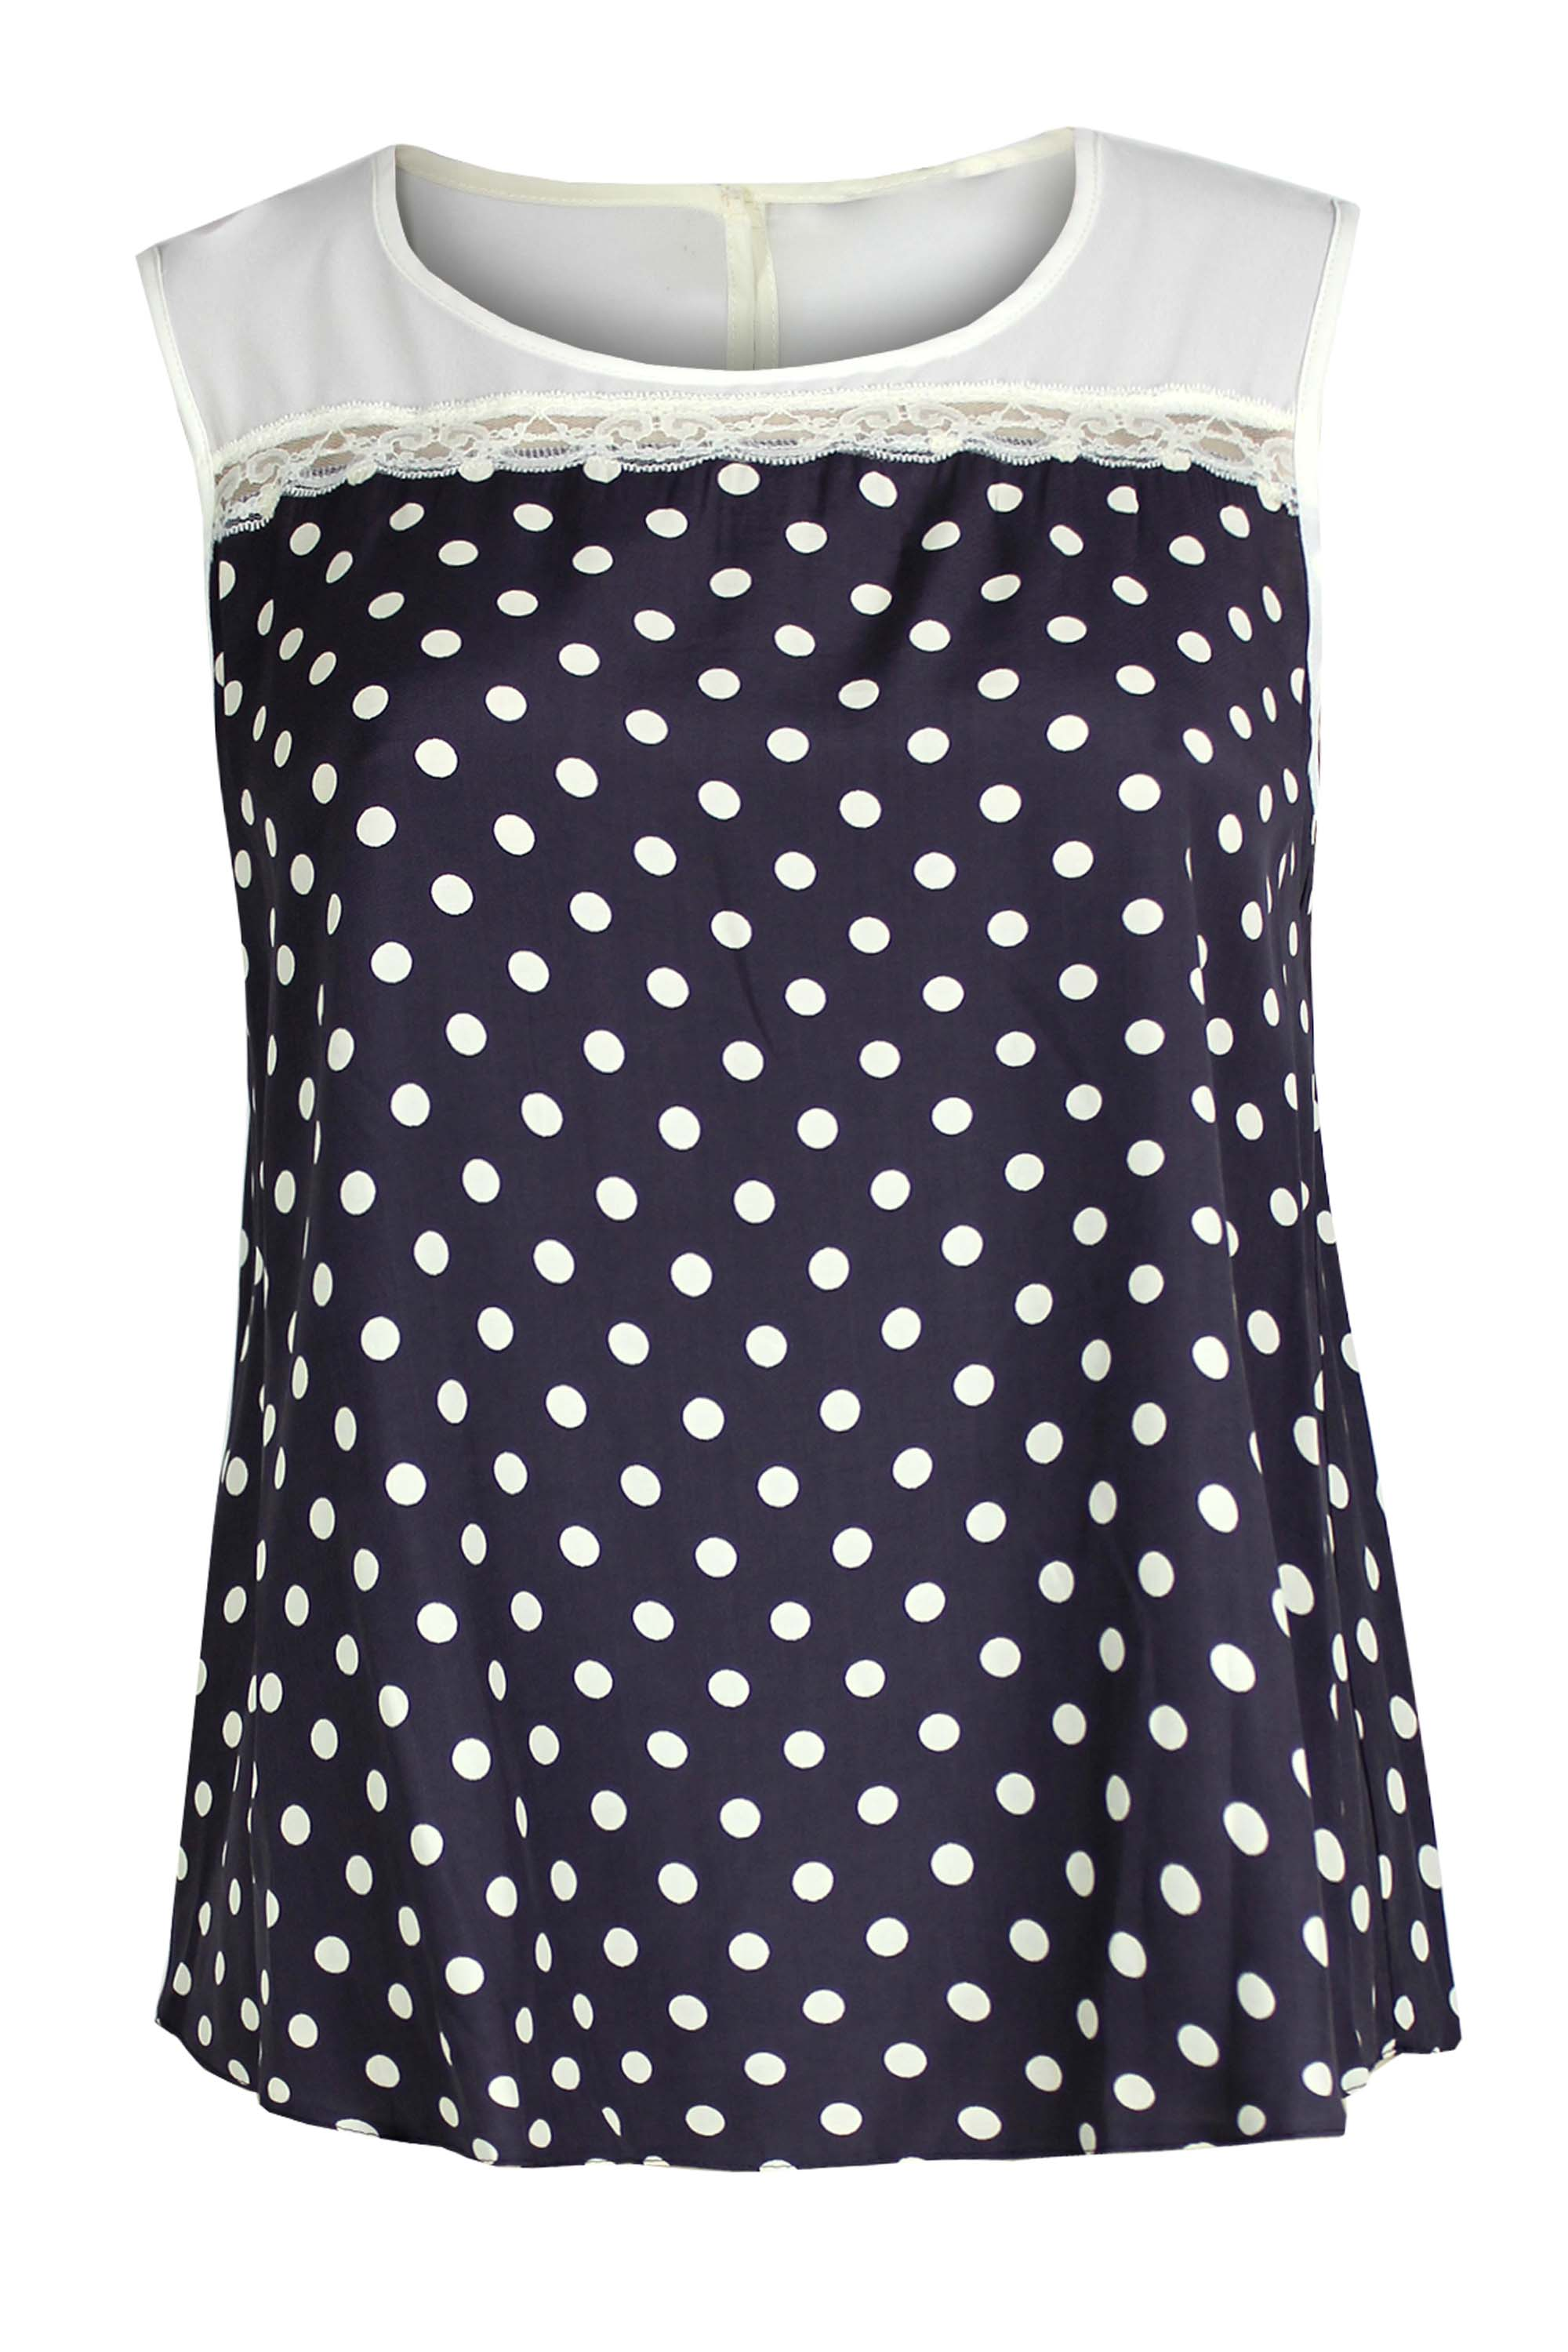 Ladies-Womens-Plus-Size-Sleeveless-Polka-Dot-Lace-Insert-Top